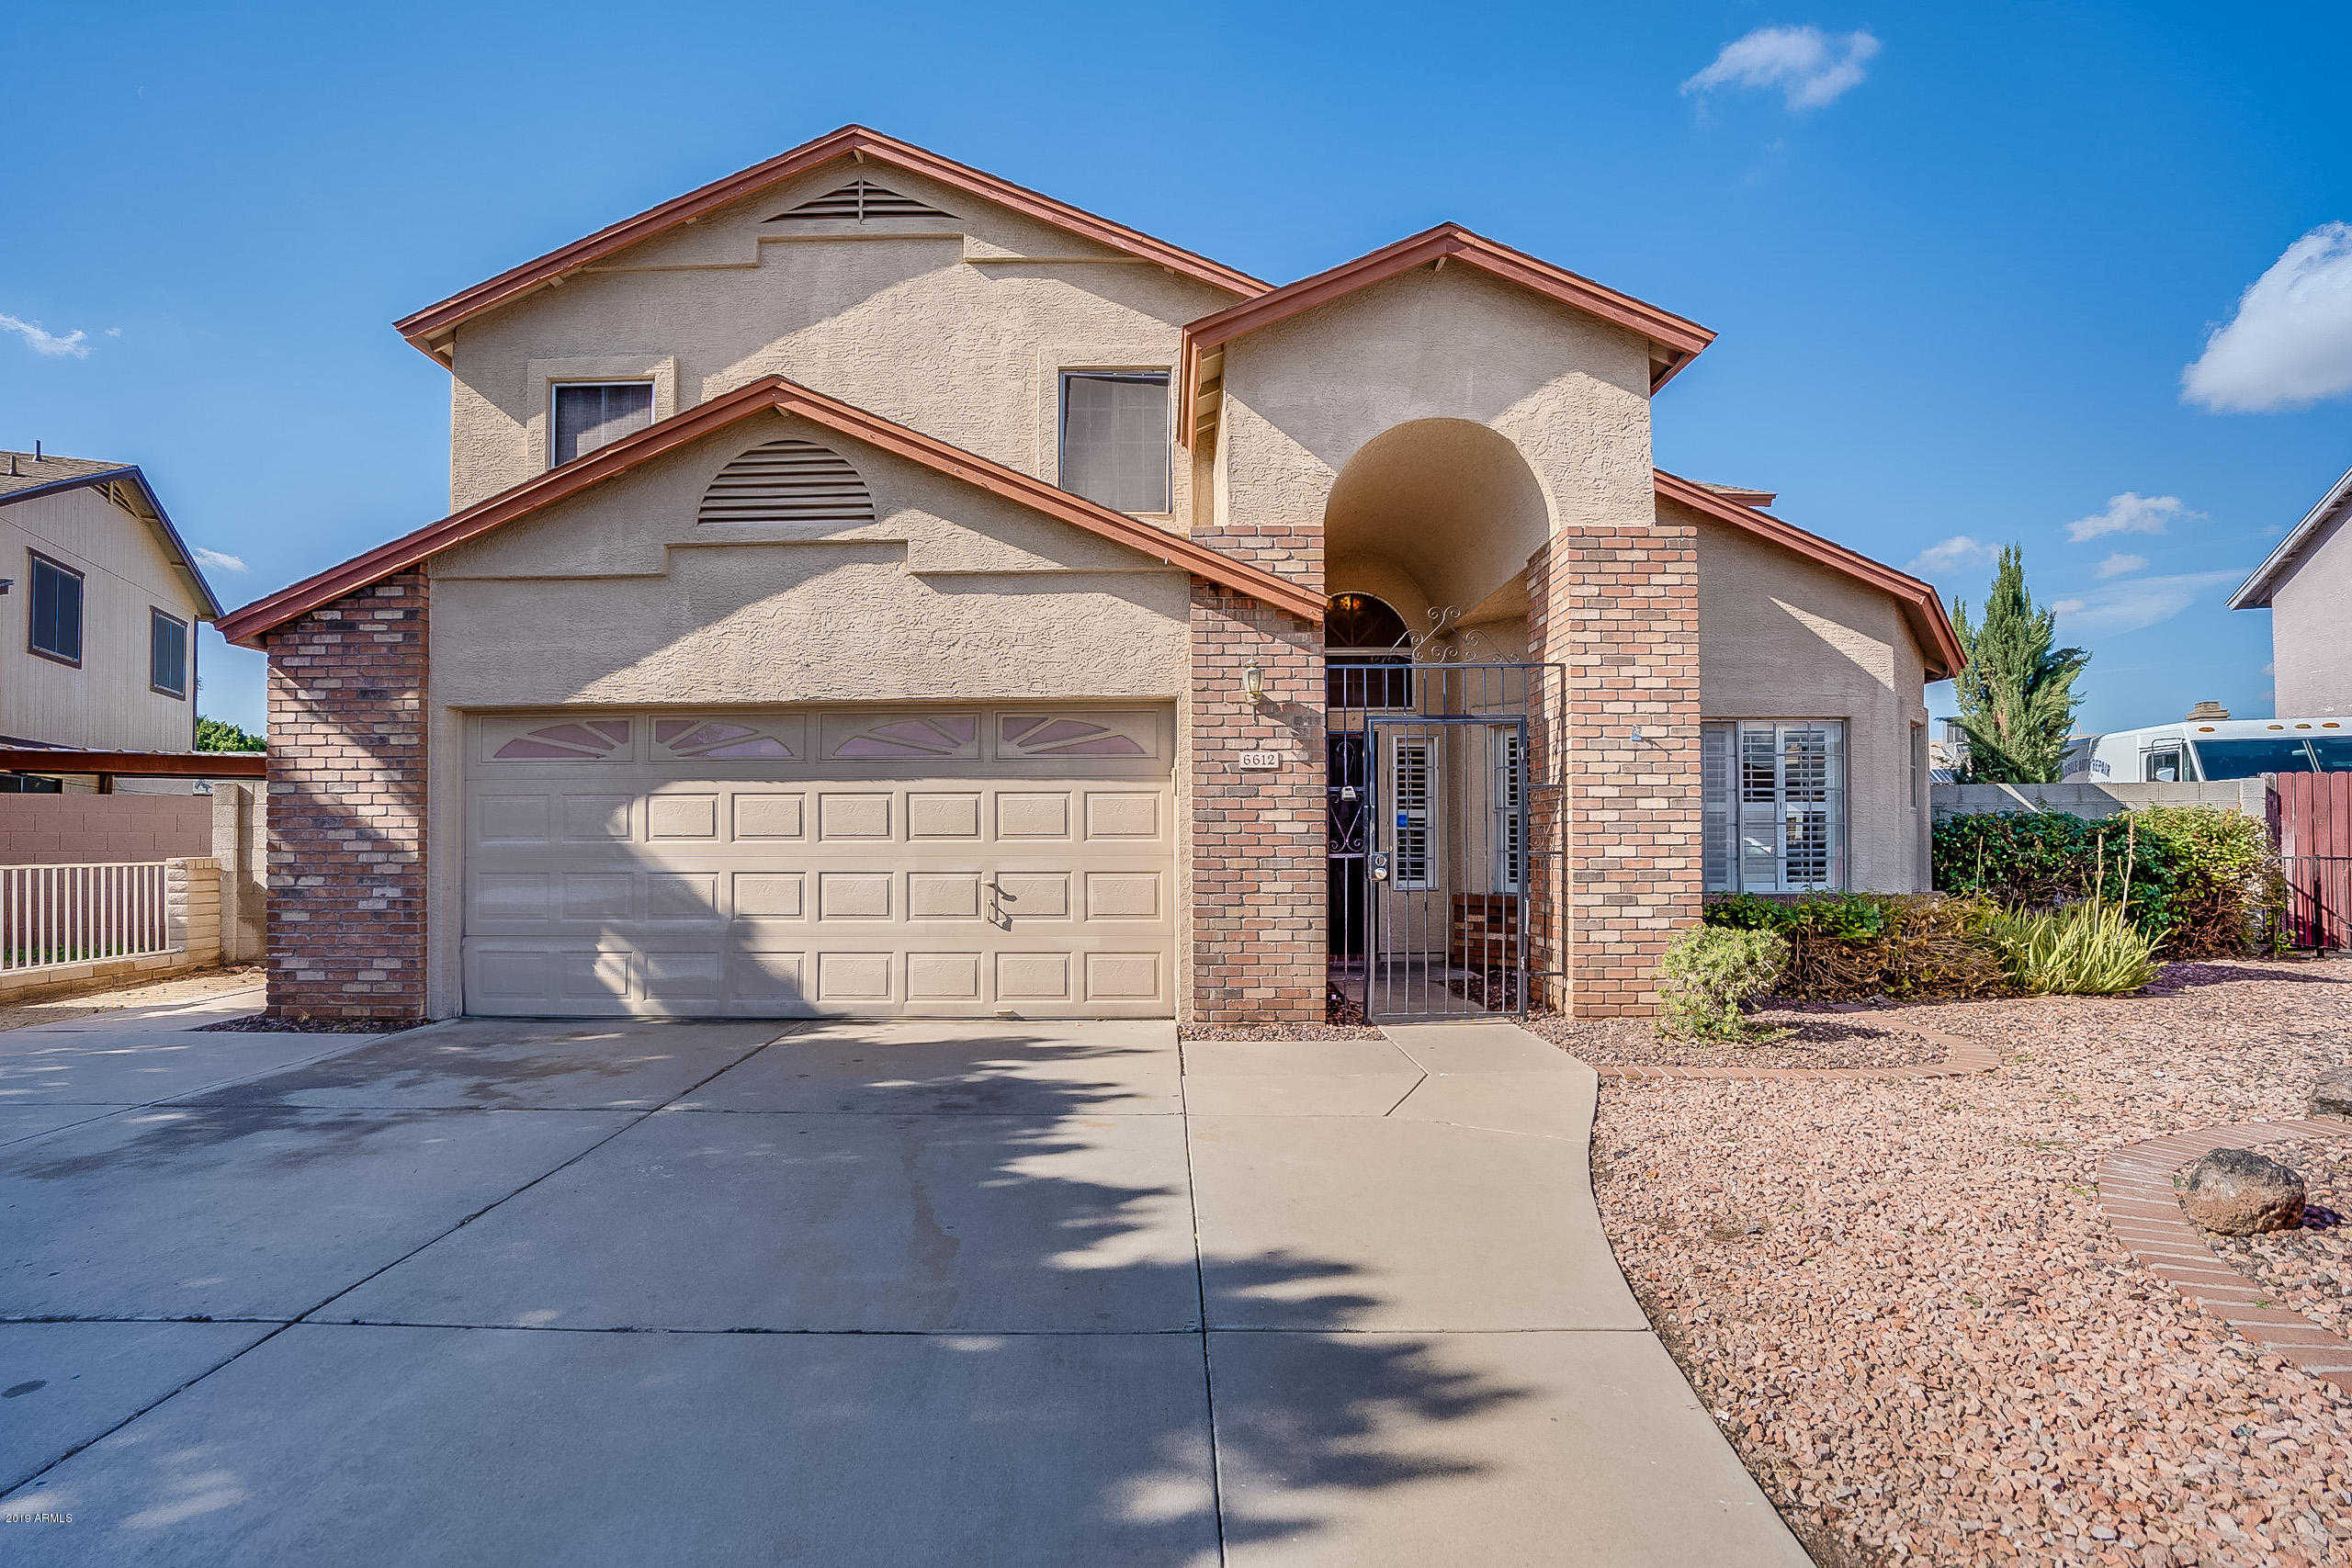 $300,000 - 4Br/3Ba - Home for Sale in West Plaza 31 & 32 Amd Lot 1-608 Tr A-c, Glendale